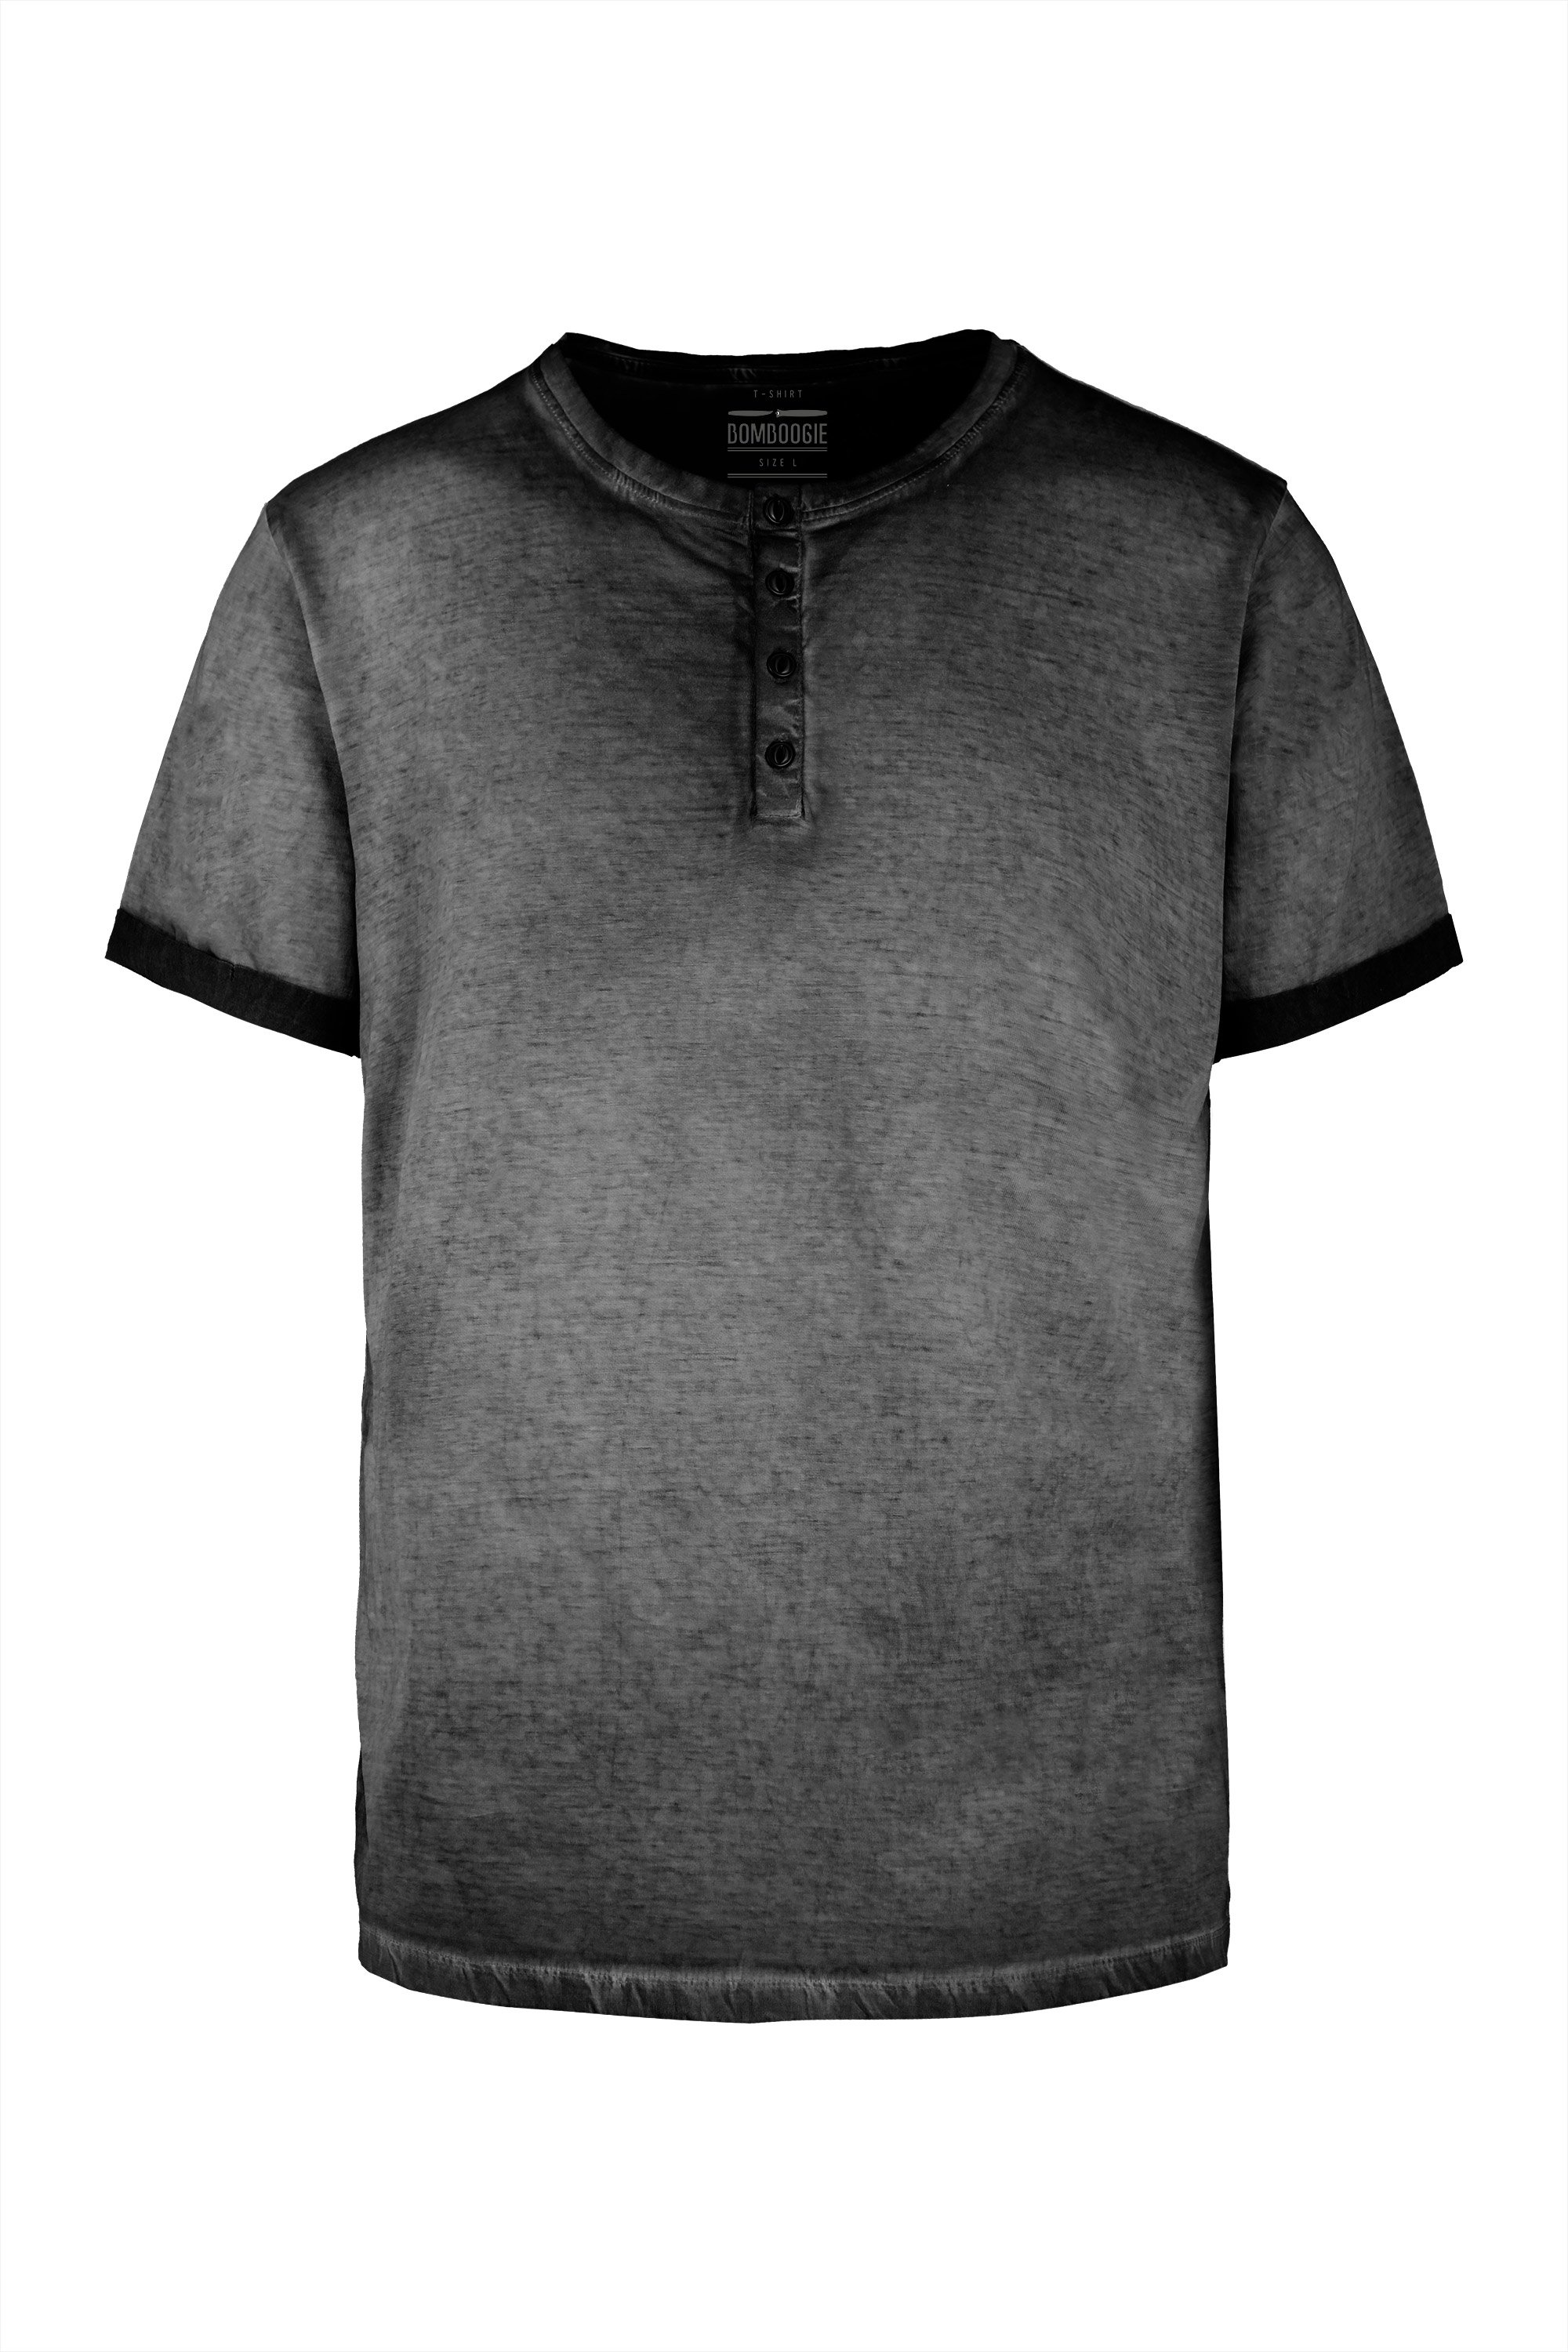 T-shirt cold dyed with buttons